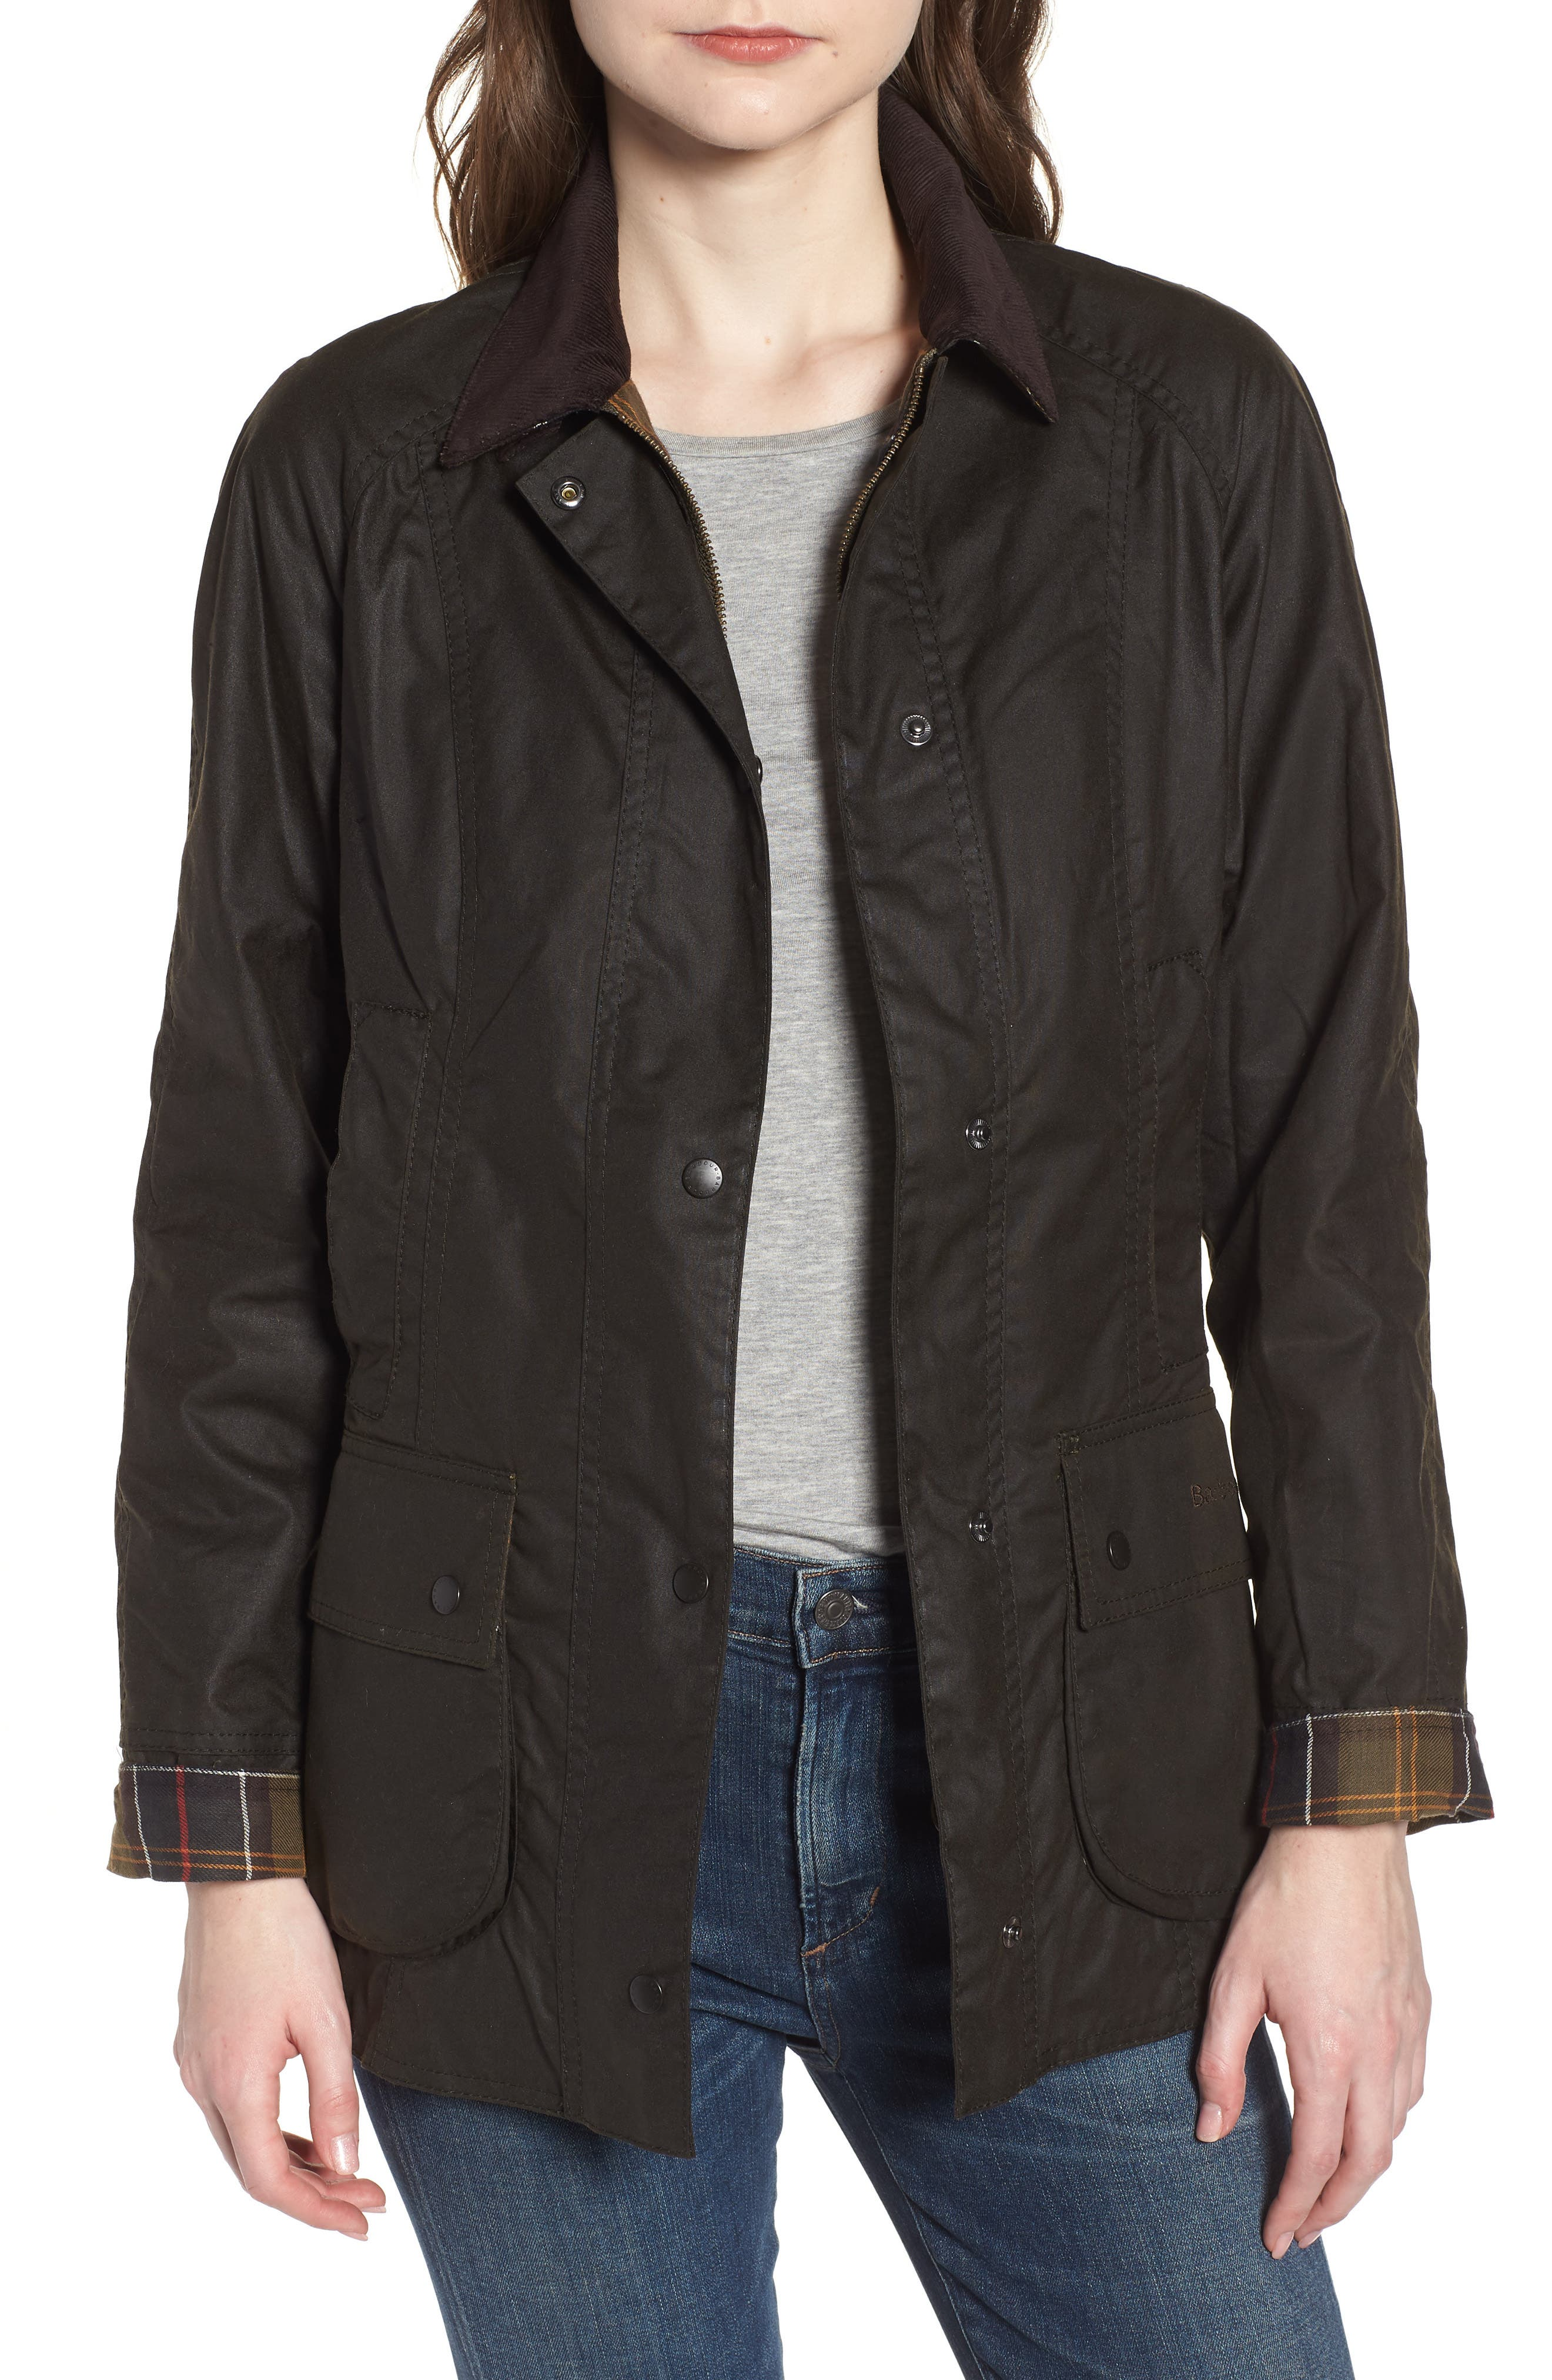 Beadnell Waxed Cotton Jacket,                             Main thumbnail 1, color,                             Olive